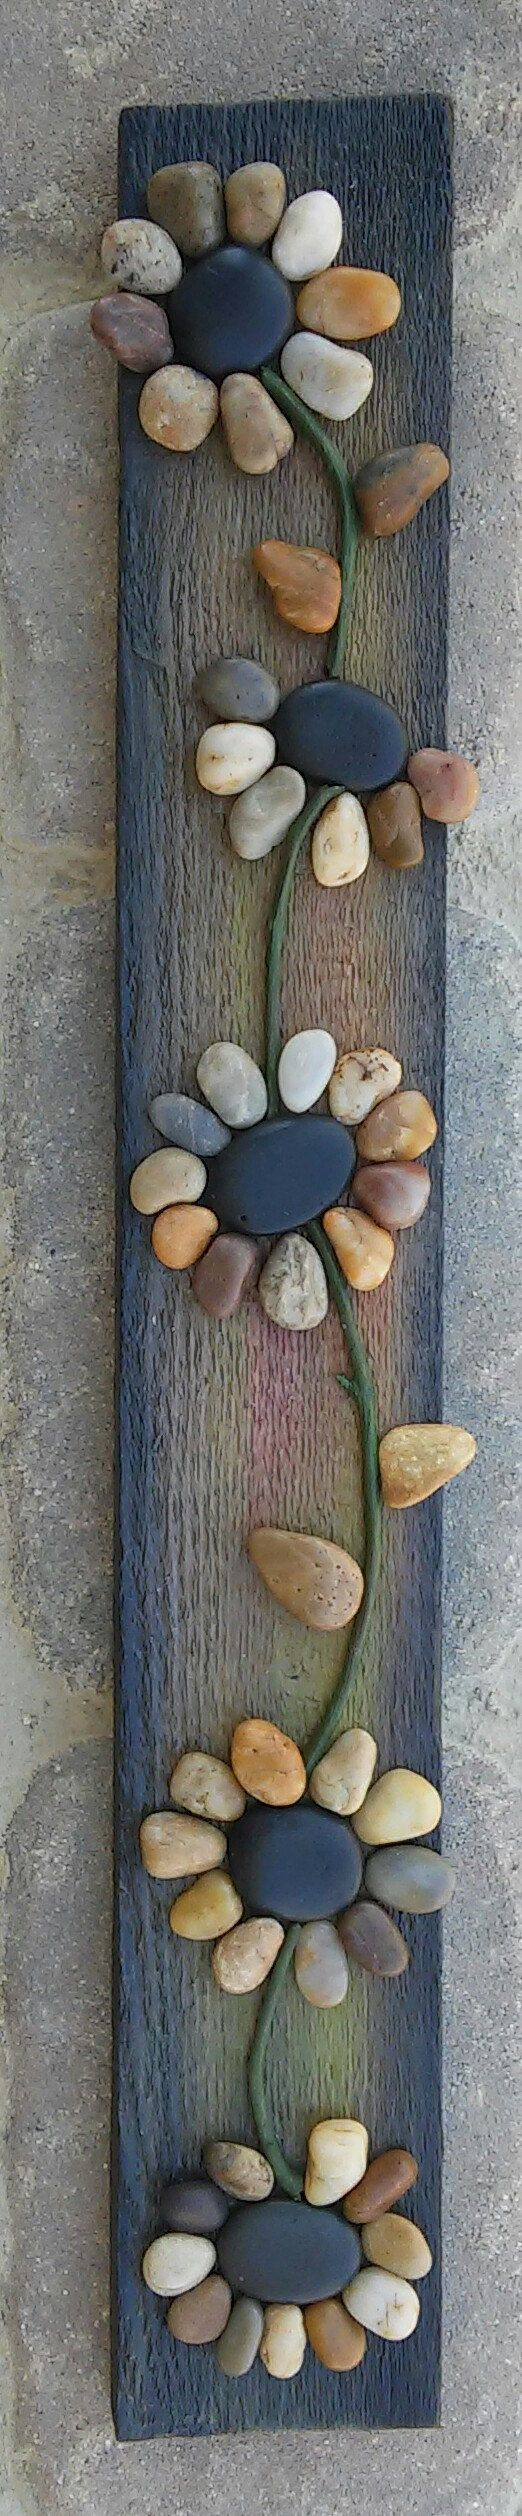 Original pebble/rock art depicting a string of flowers (all natural materials…